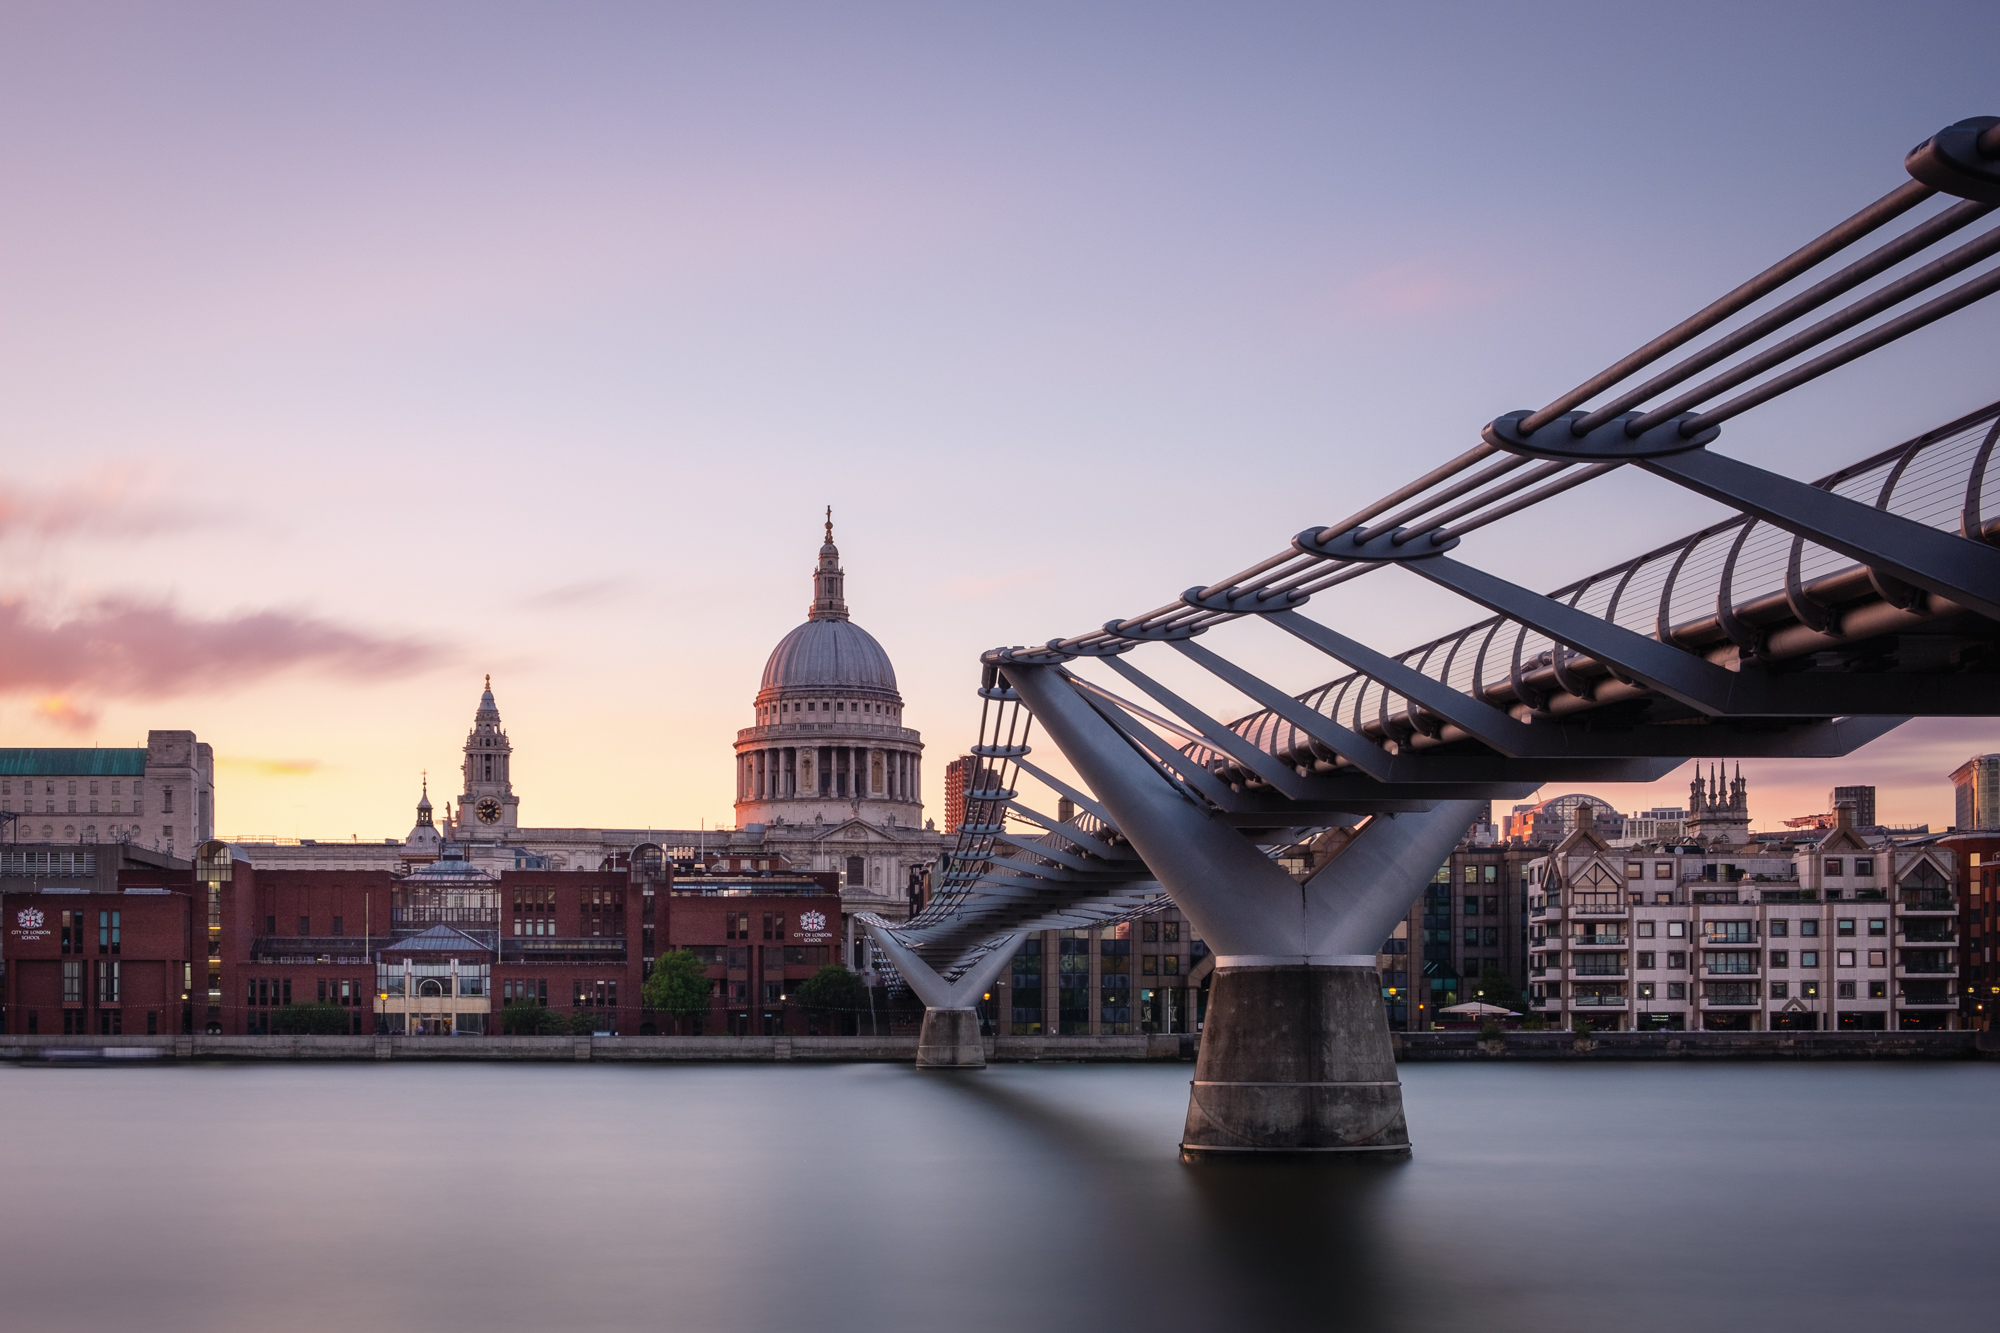 Long exposure photo of St Paul's Cathedral and the Millennium Bridge, London Fujifilm X-T2 | XF18-55mm | 25mm | 161 seconds | f/11 | ISO200